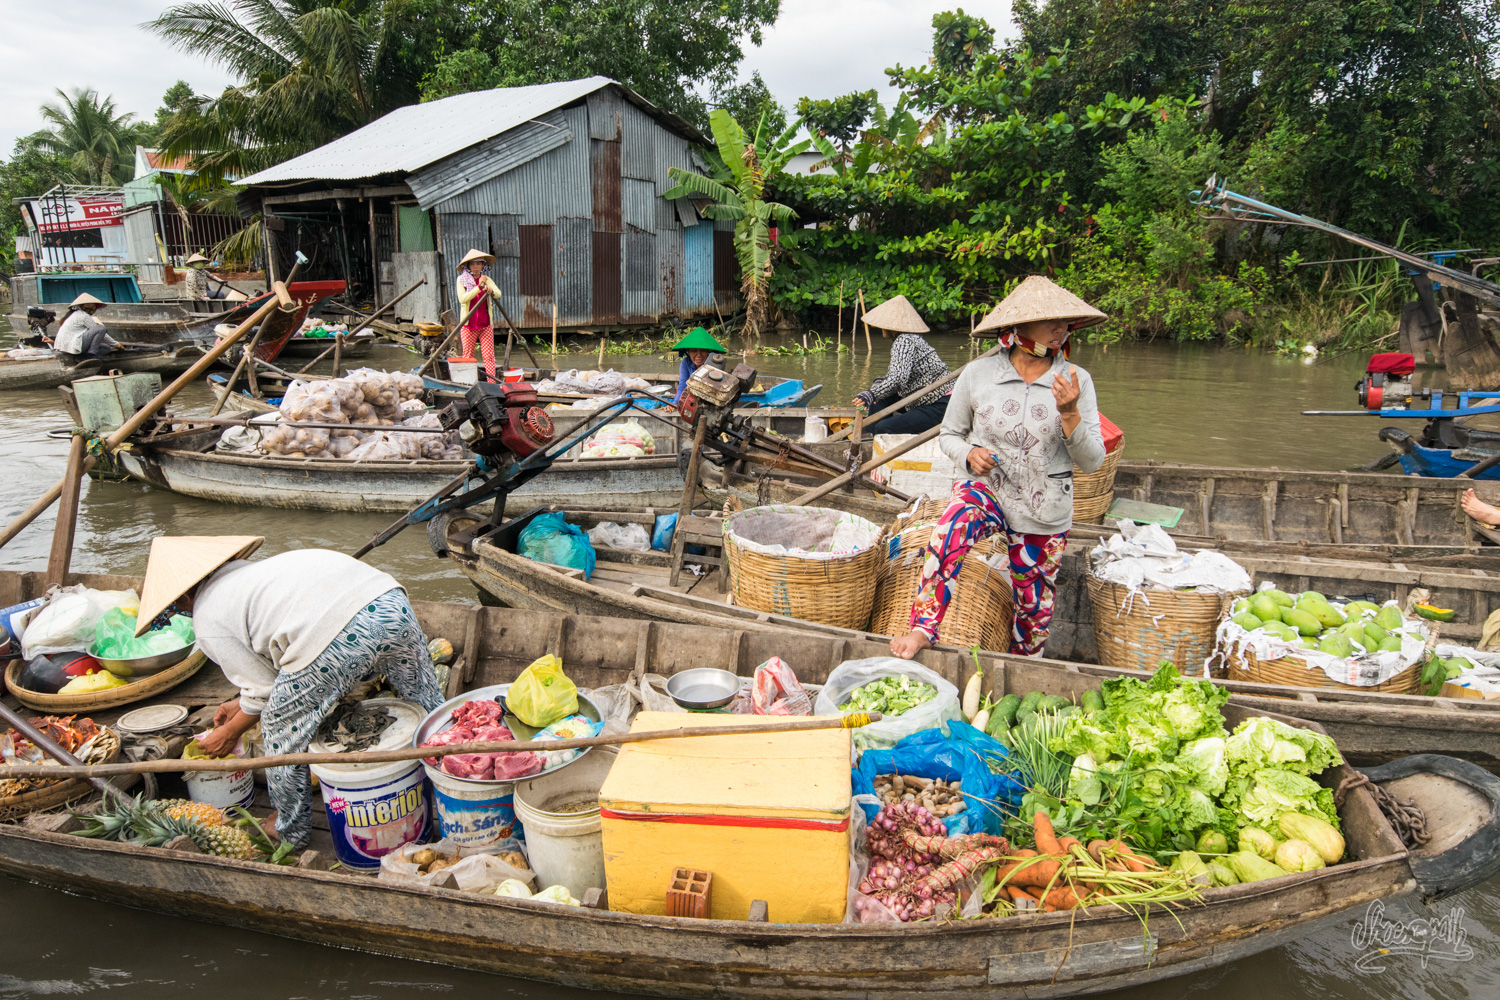 Another floating market in Can Tho